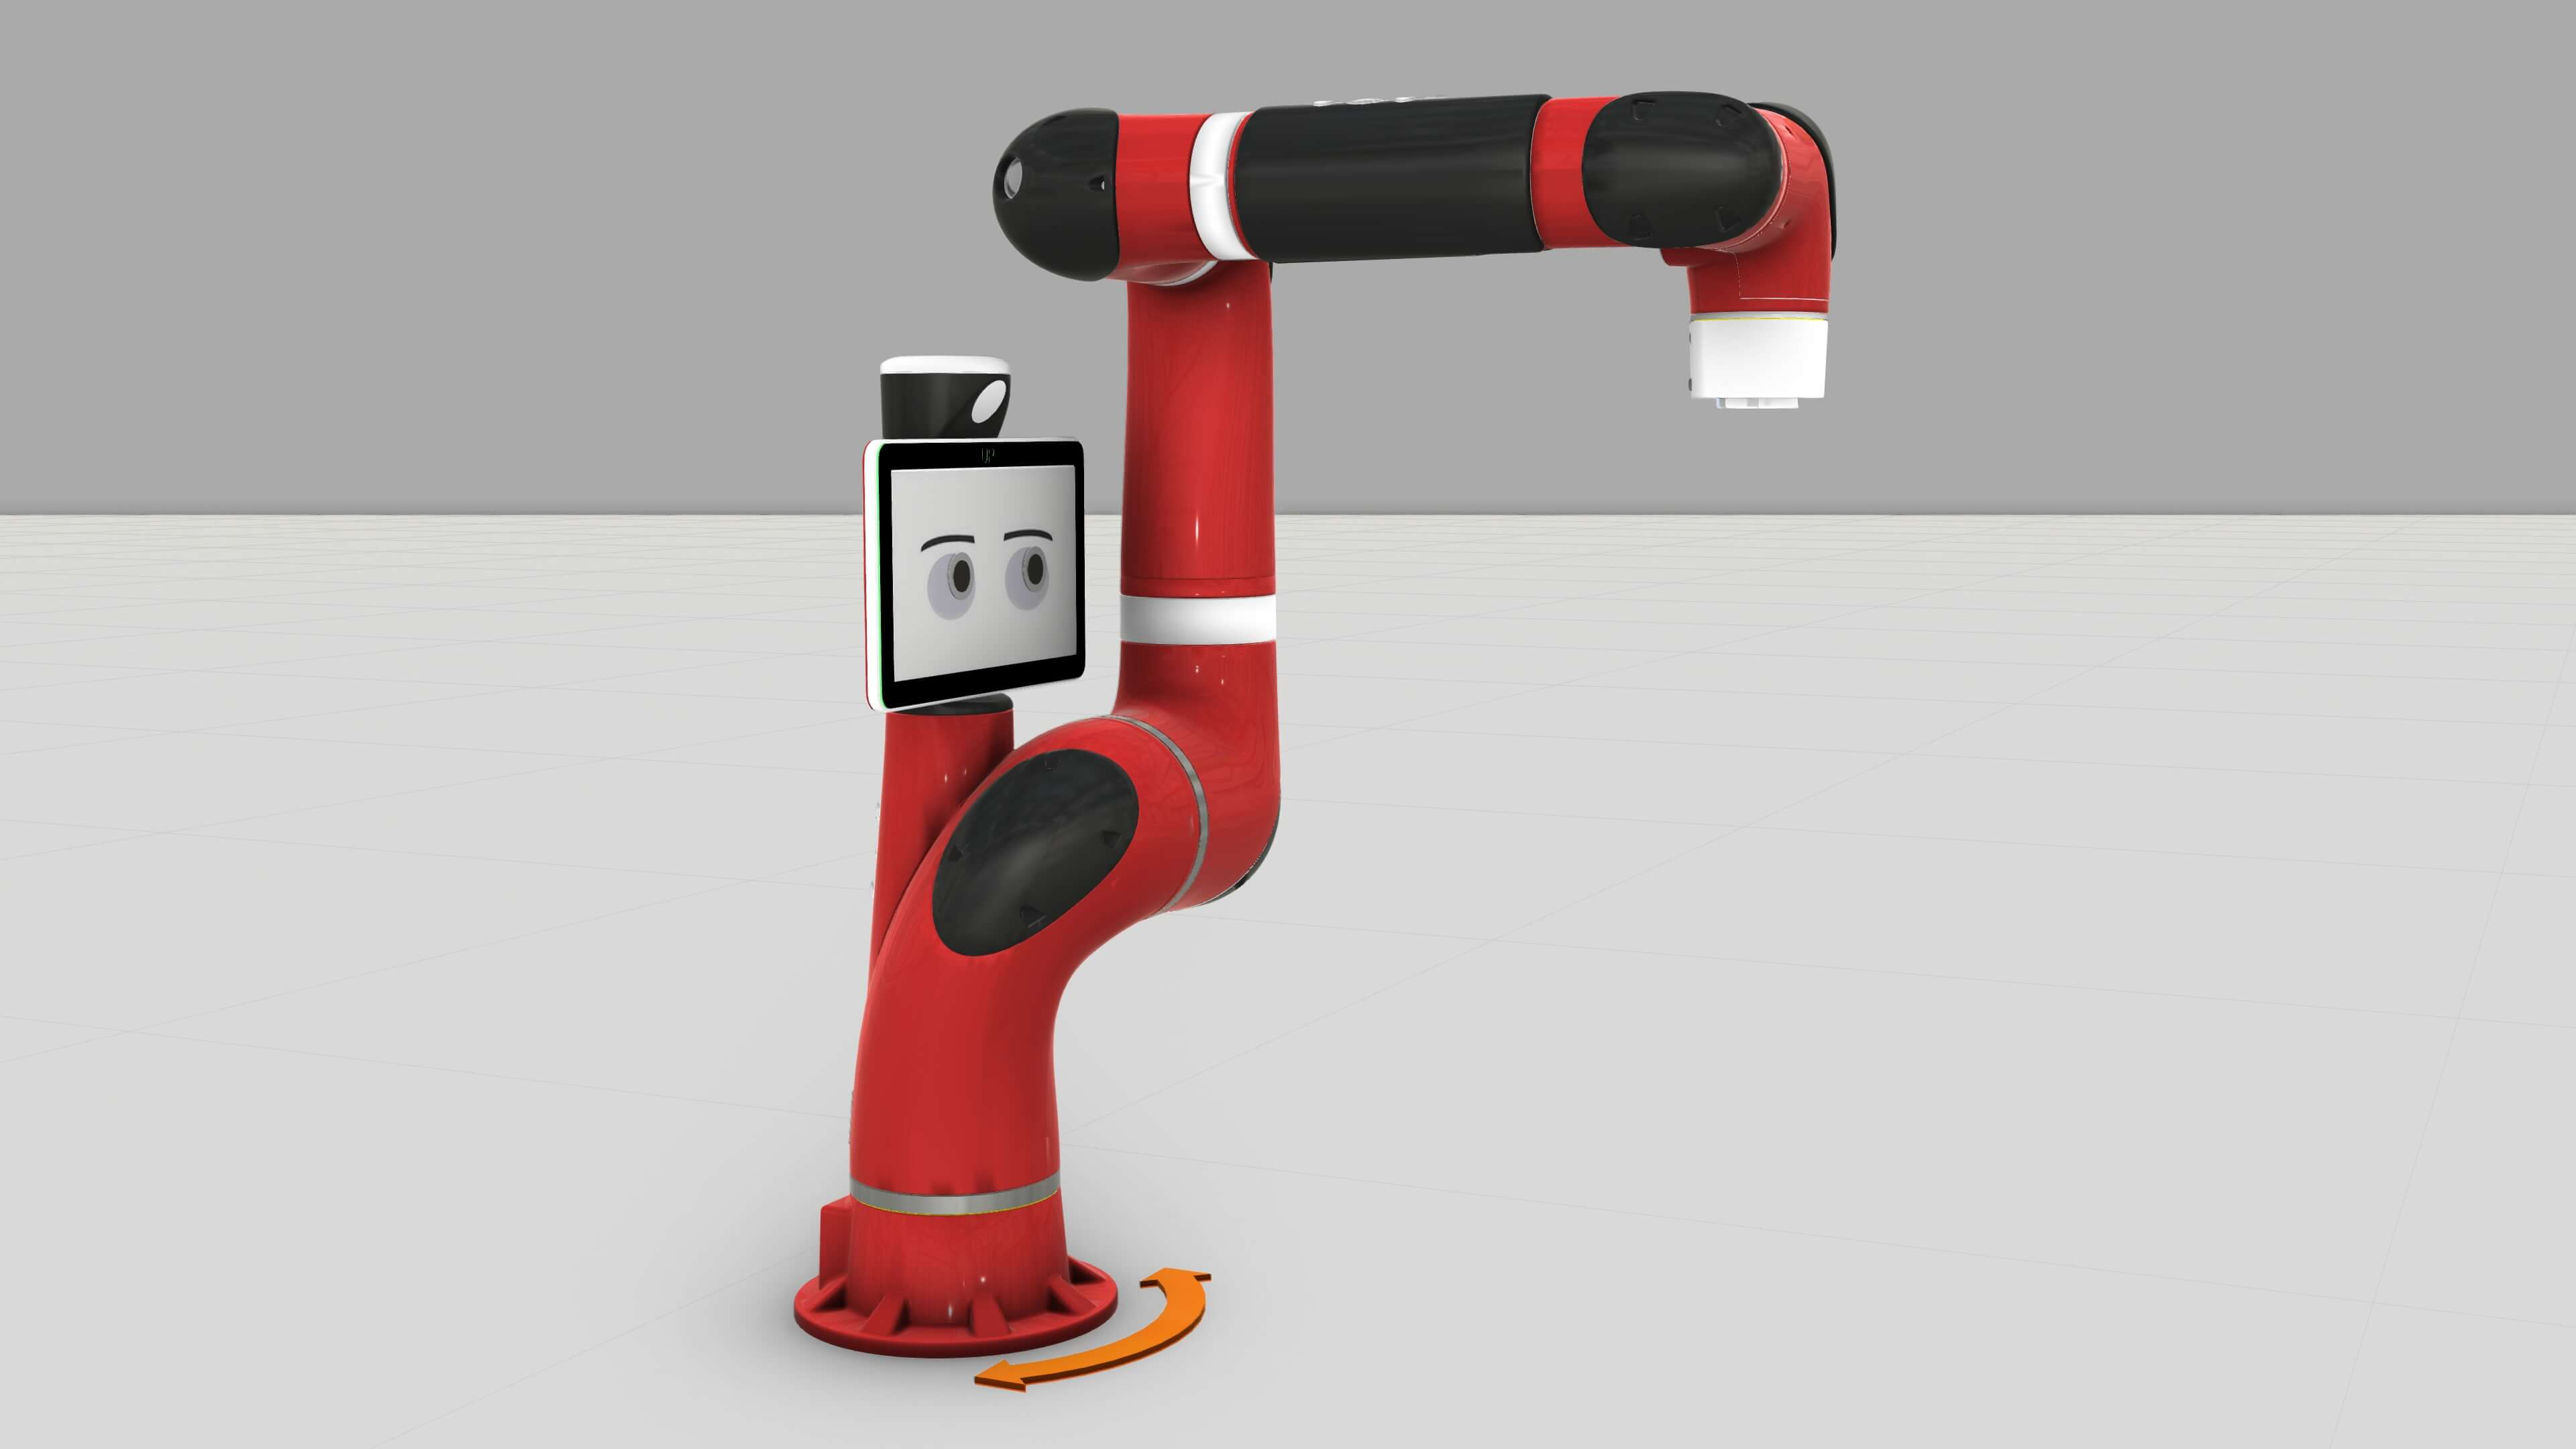 The new Rethink Robotics component additions to Visual Components eCatalog in August 2018